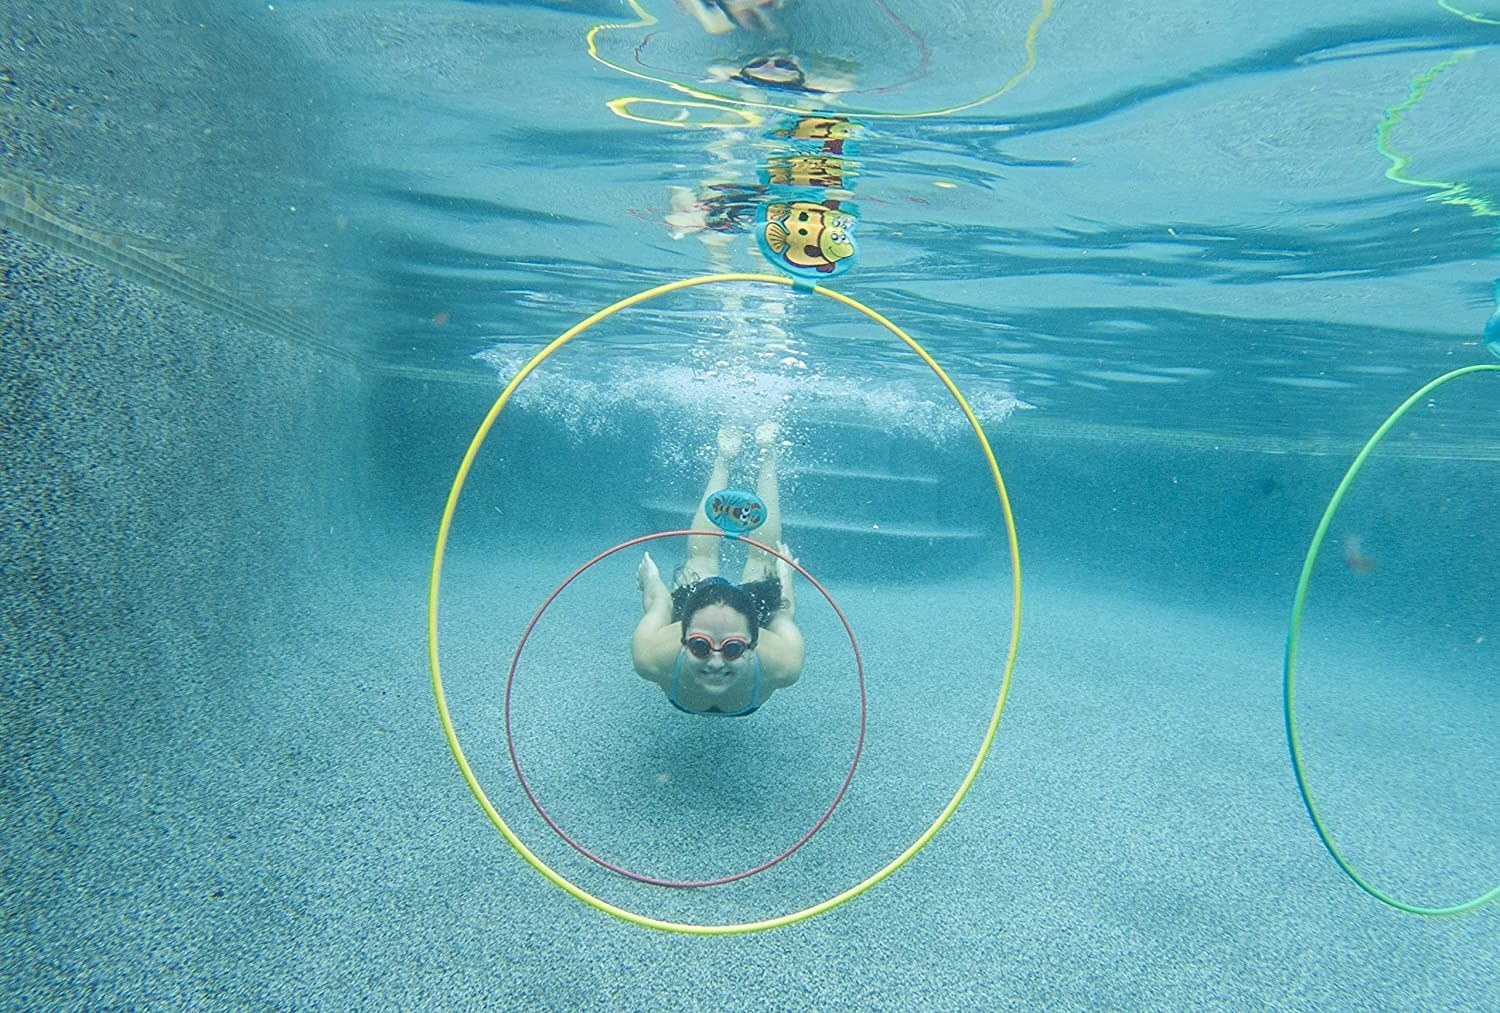 A model underwater about to swim through the rings